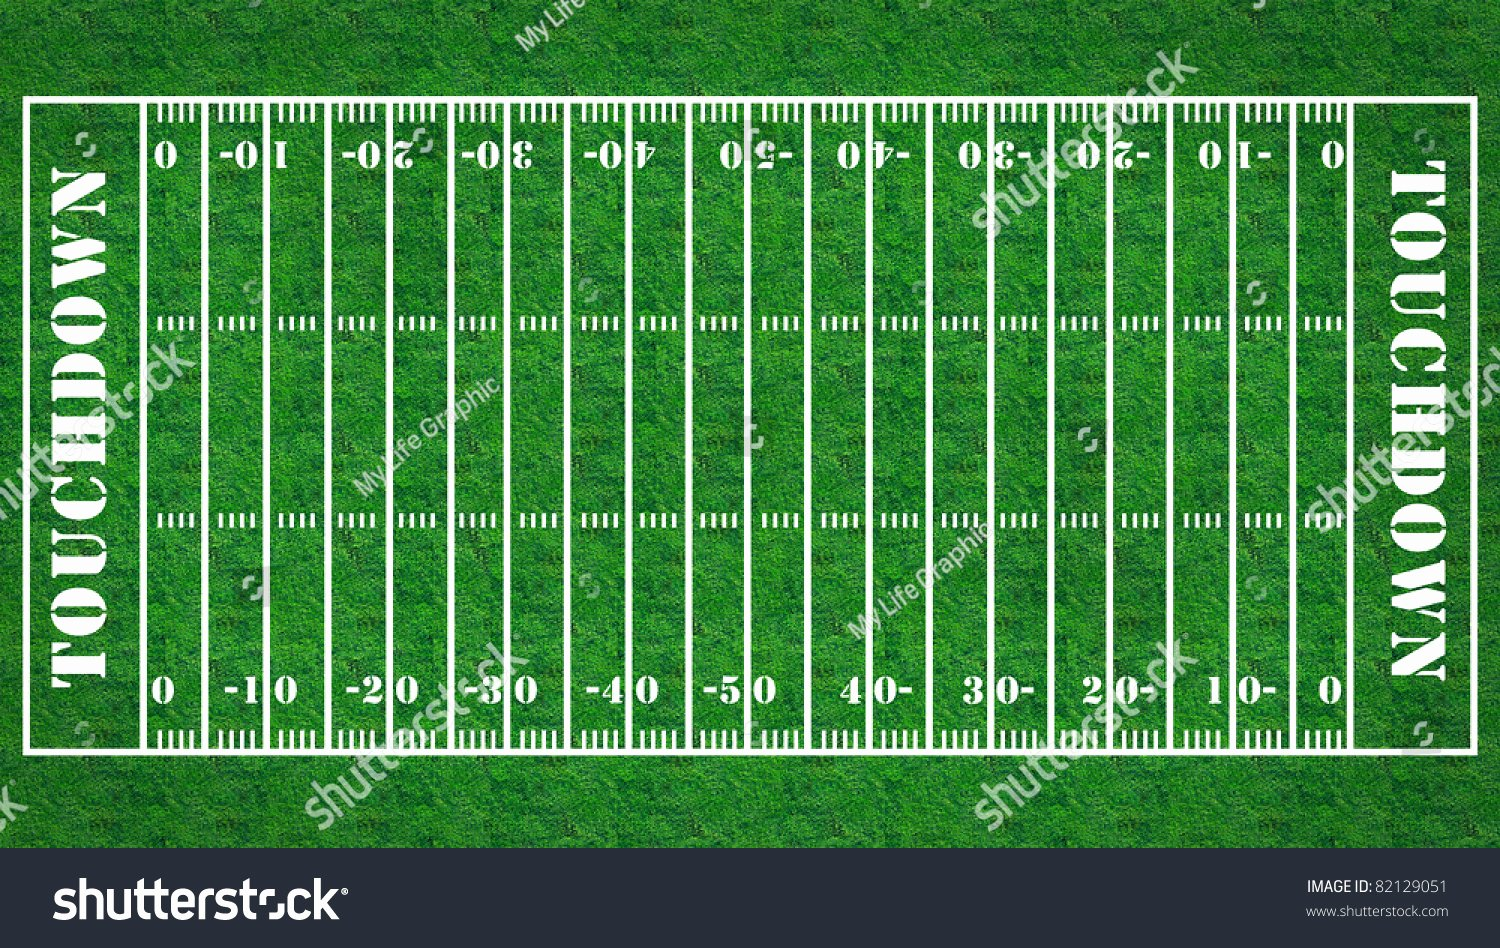 Printable Football Field Template Beautiful American Football Field with Grass Texture Background